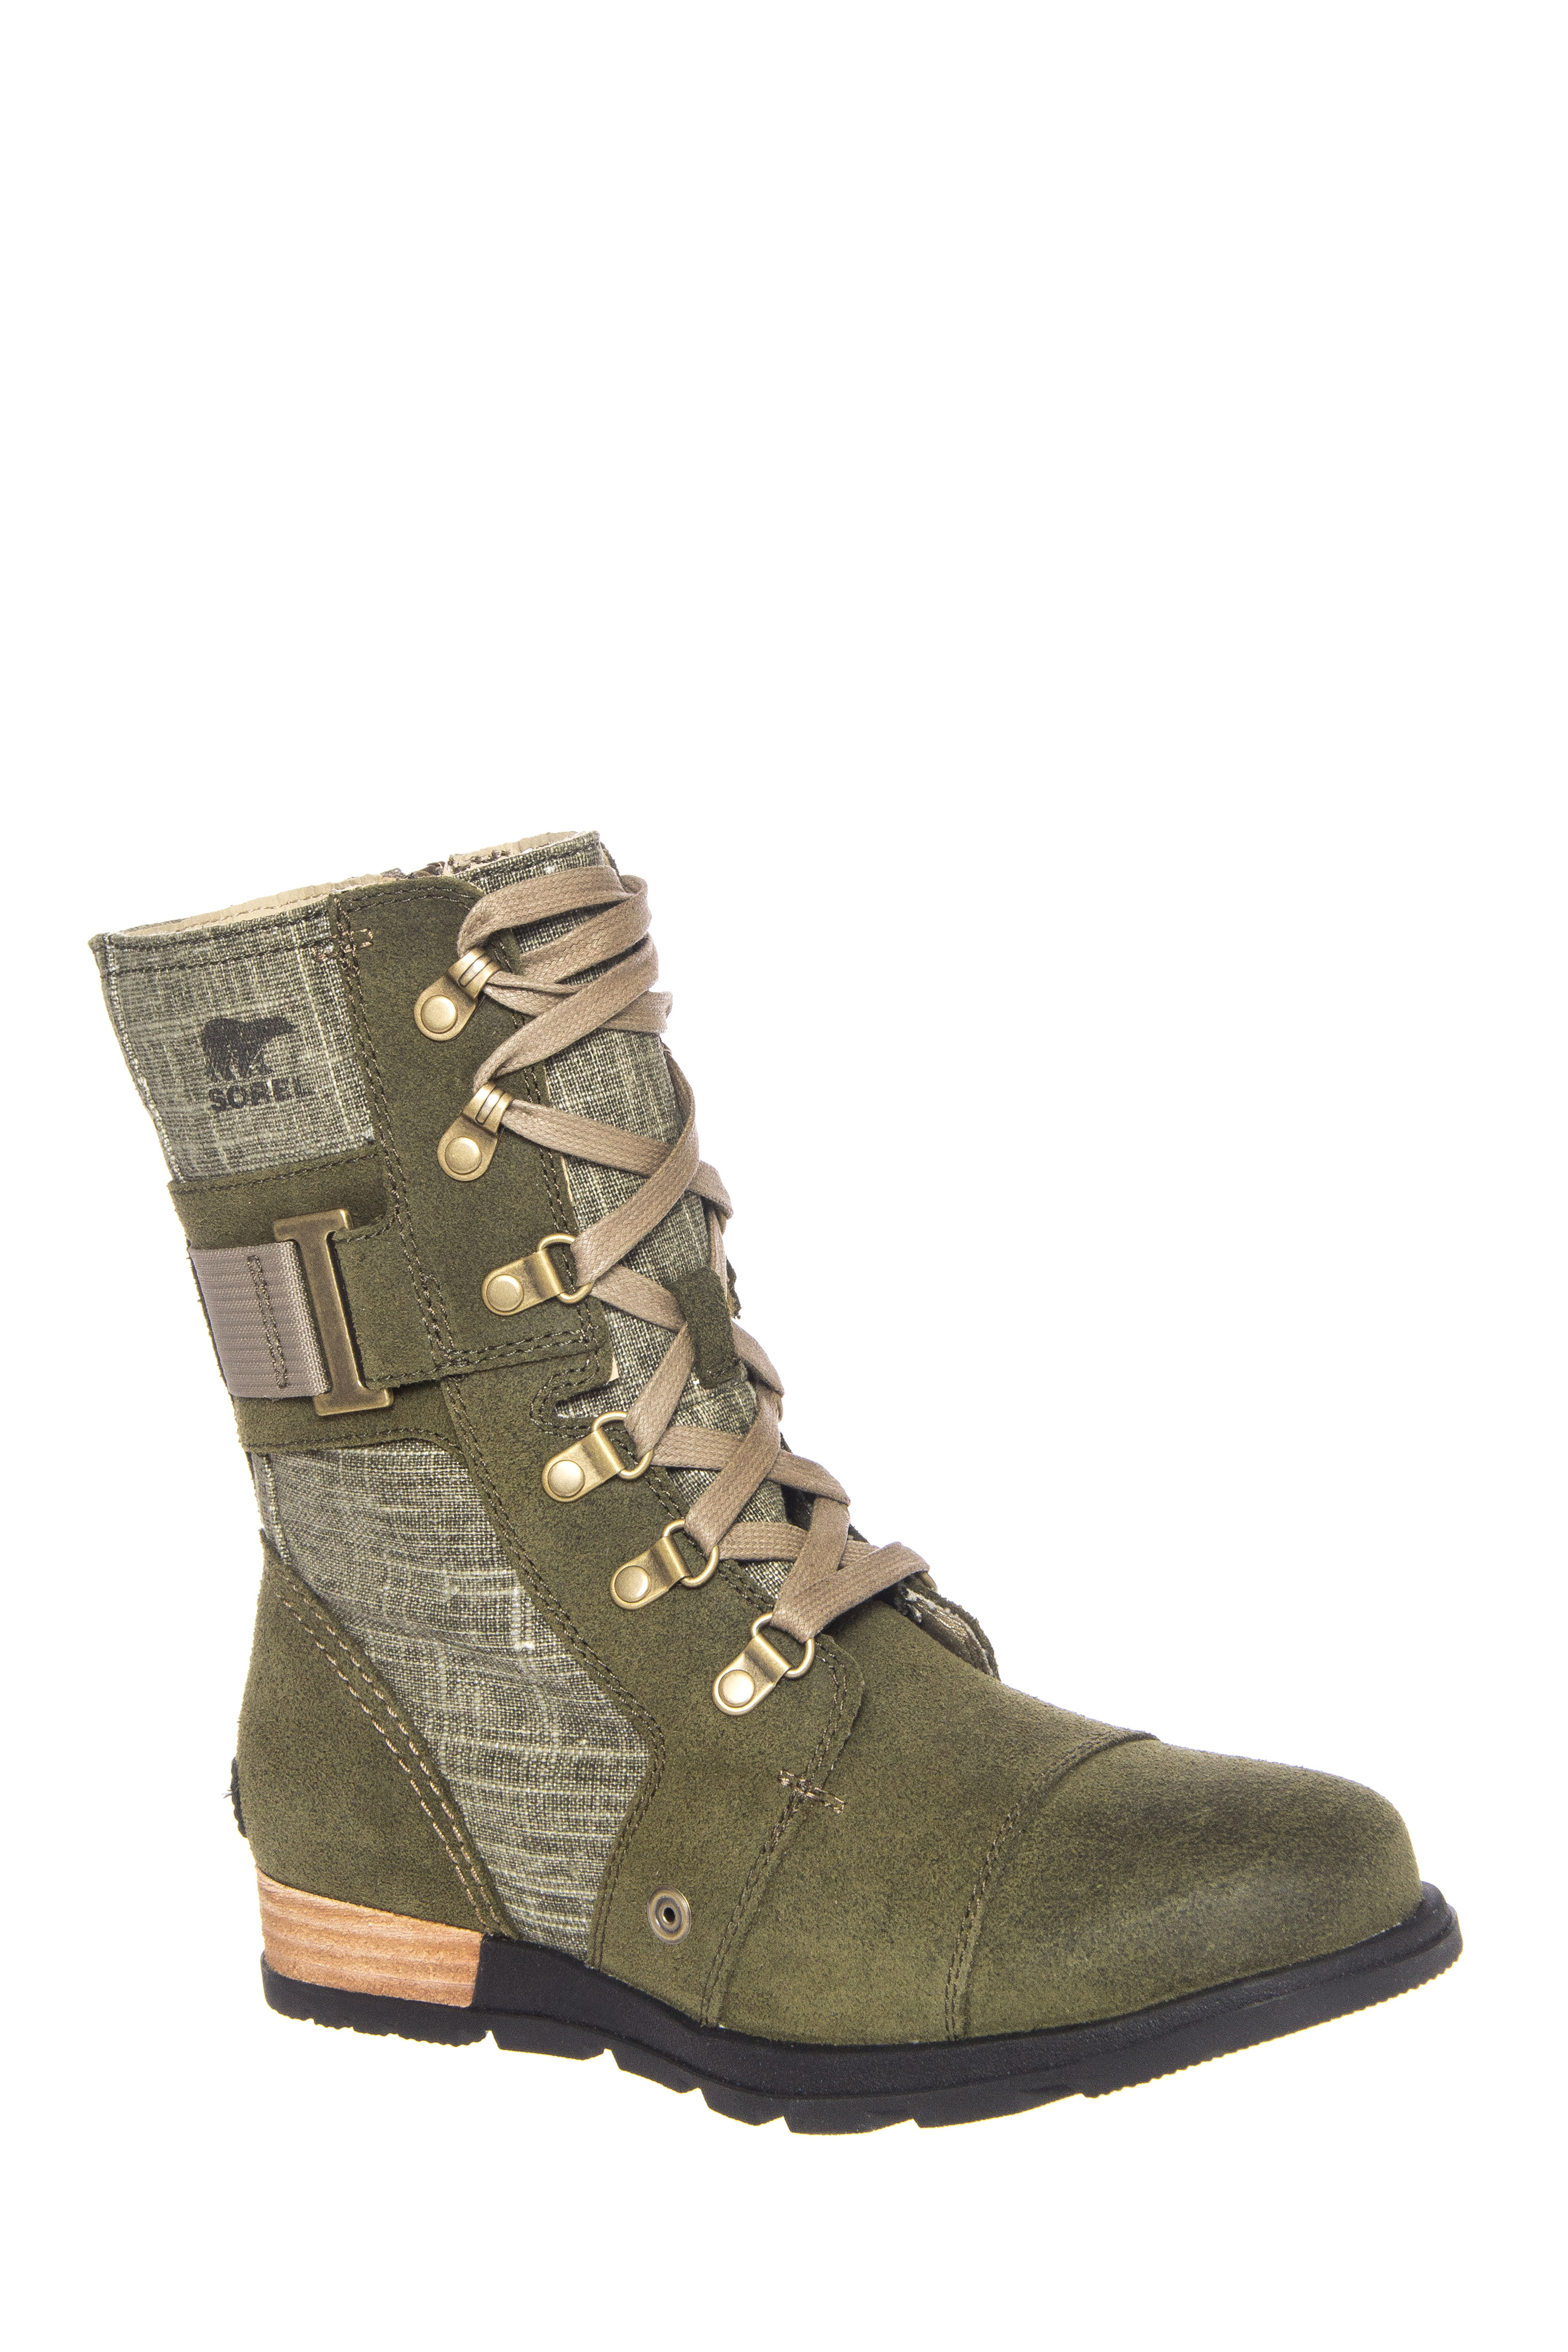 Sorel Major Carly Low Wedge Boots - Nori / Pebble